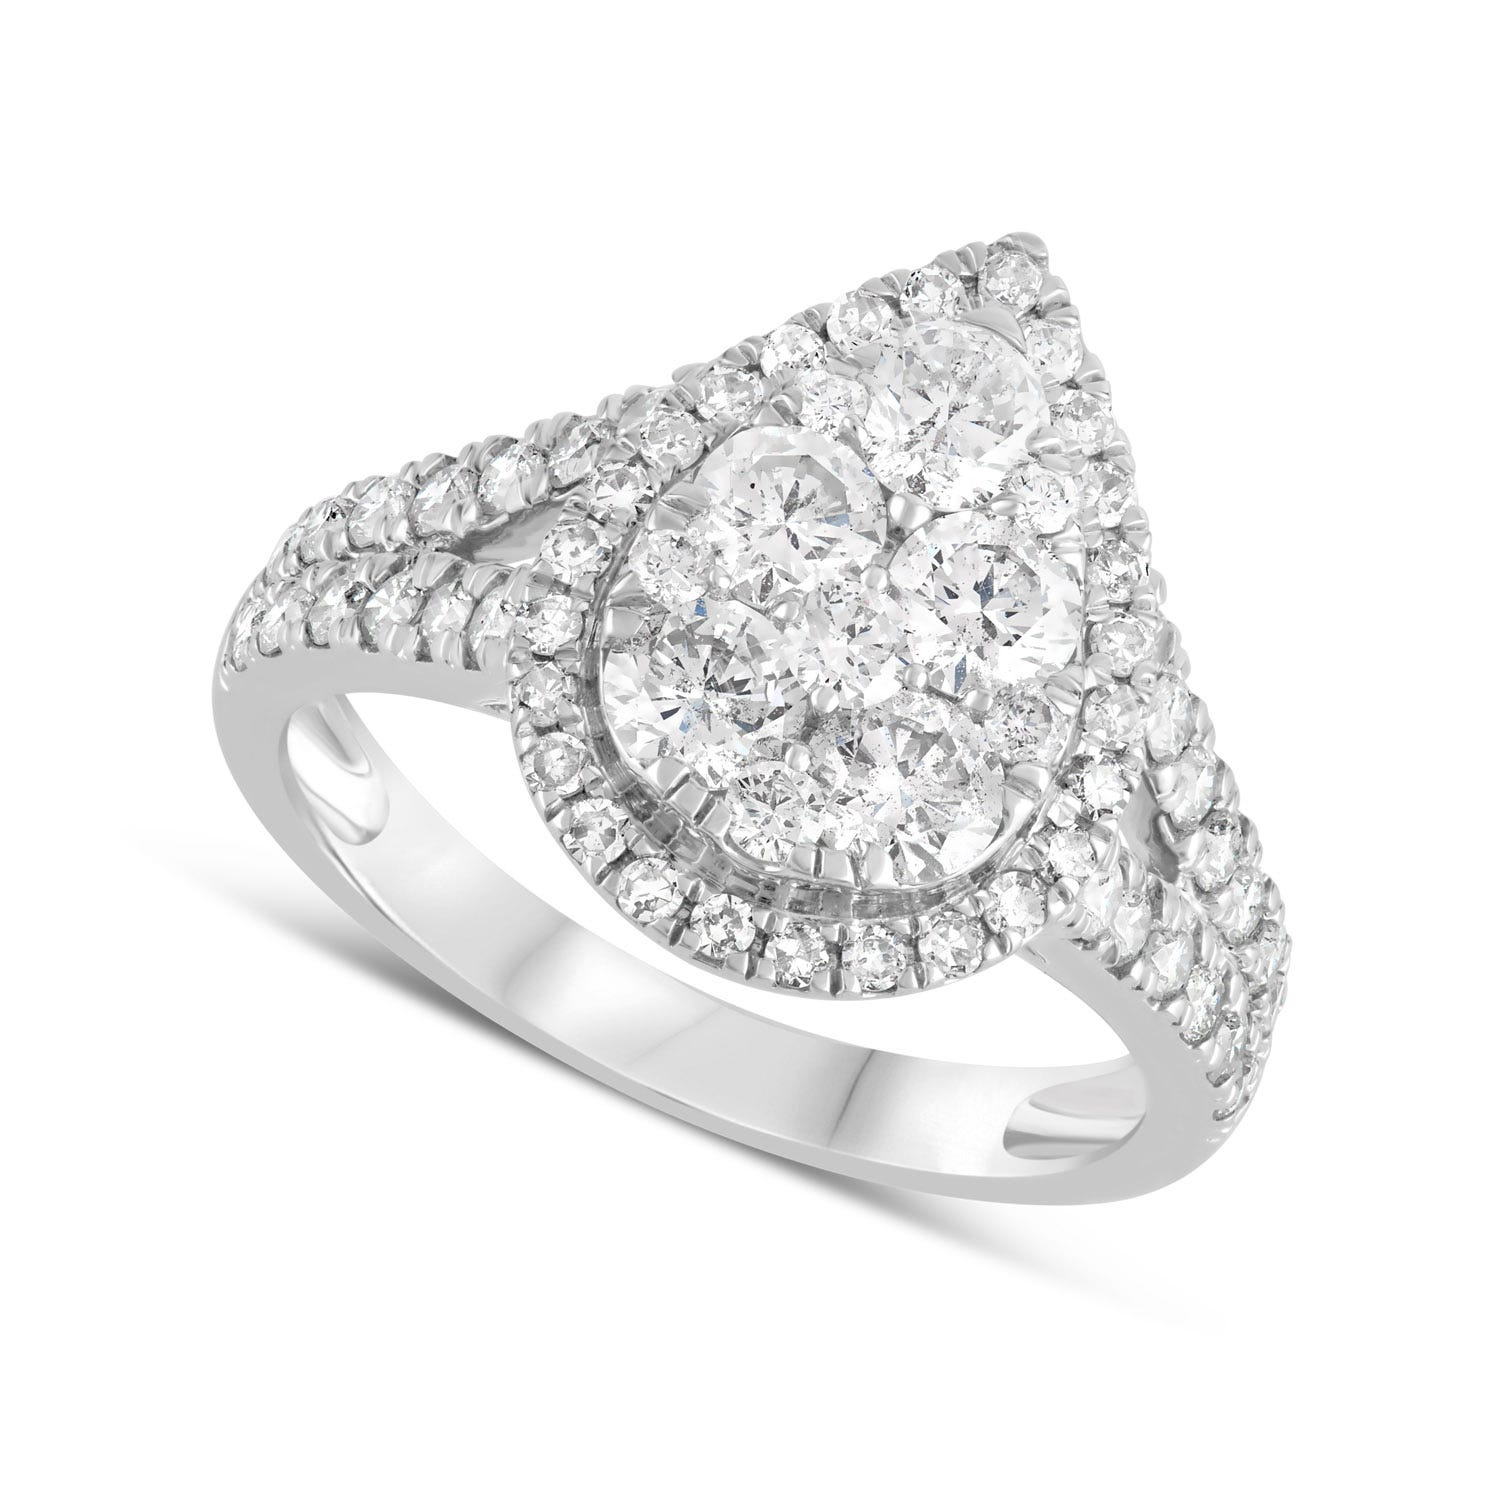 Special Price - 18ct White Gold 1.50ct Diamond Pear Cluster Ring